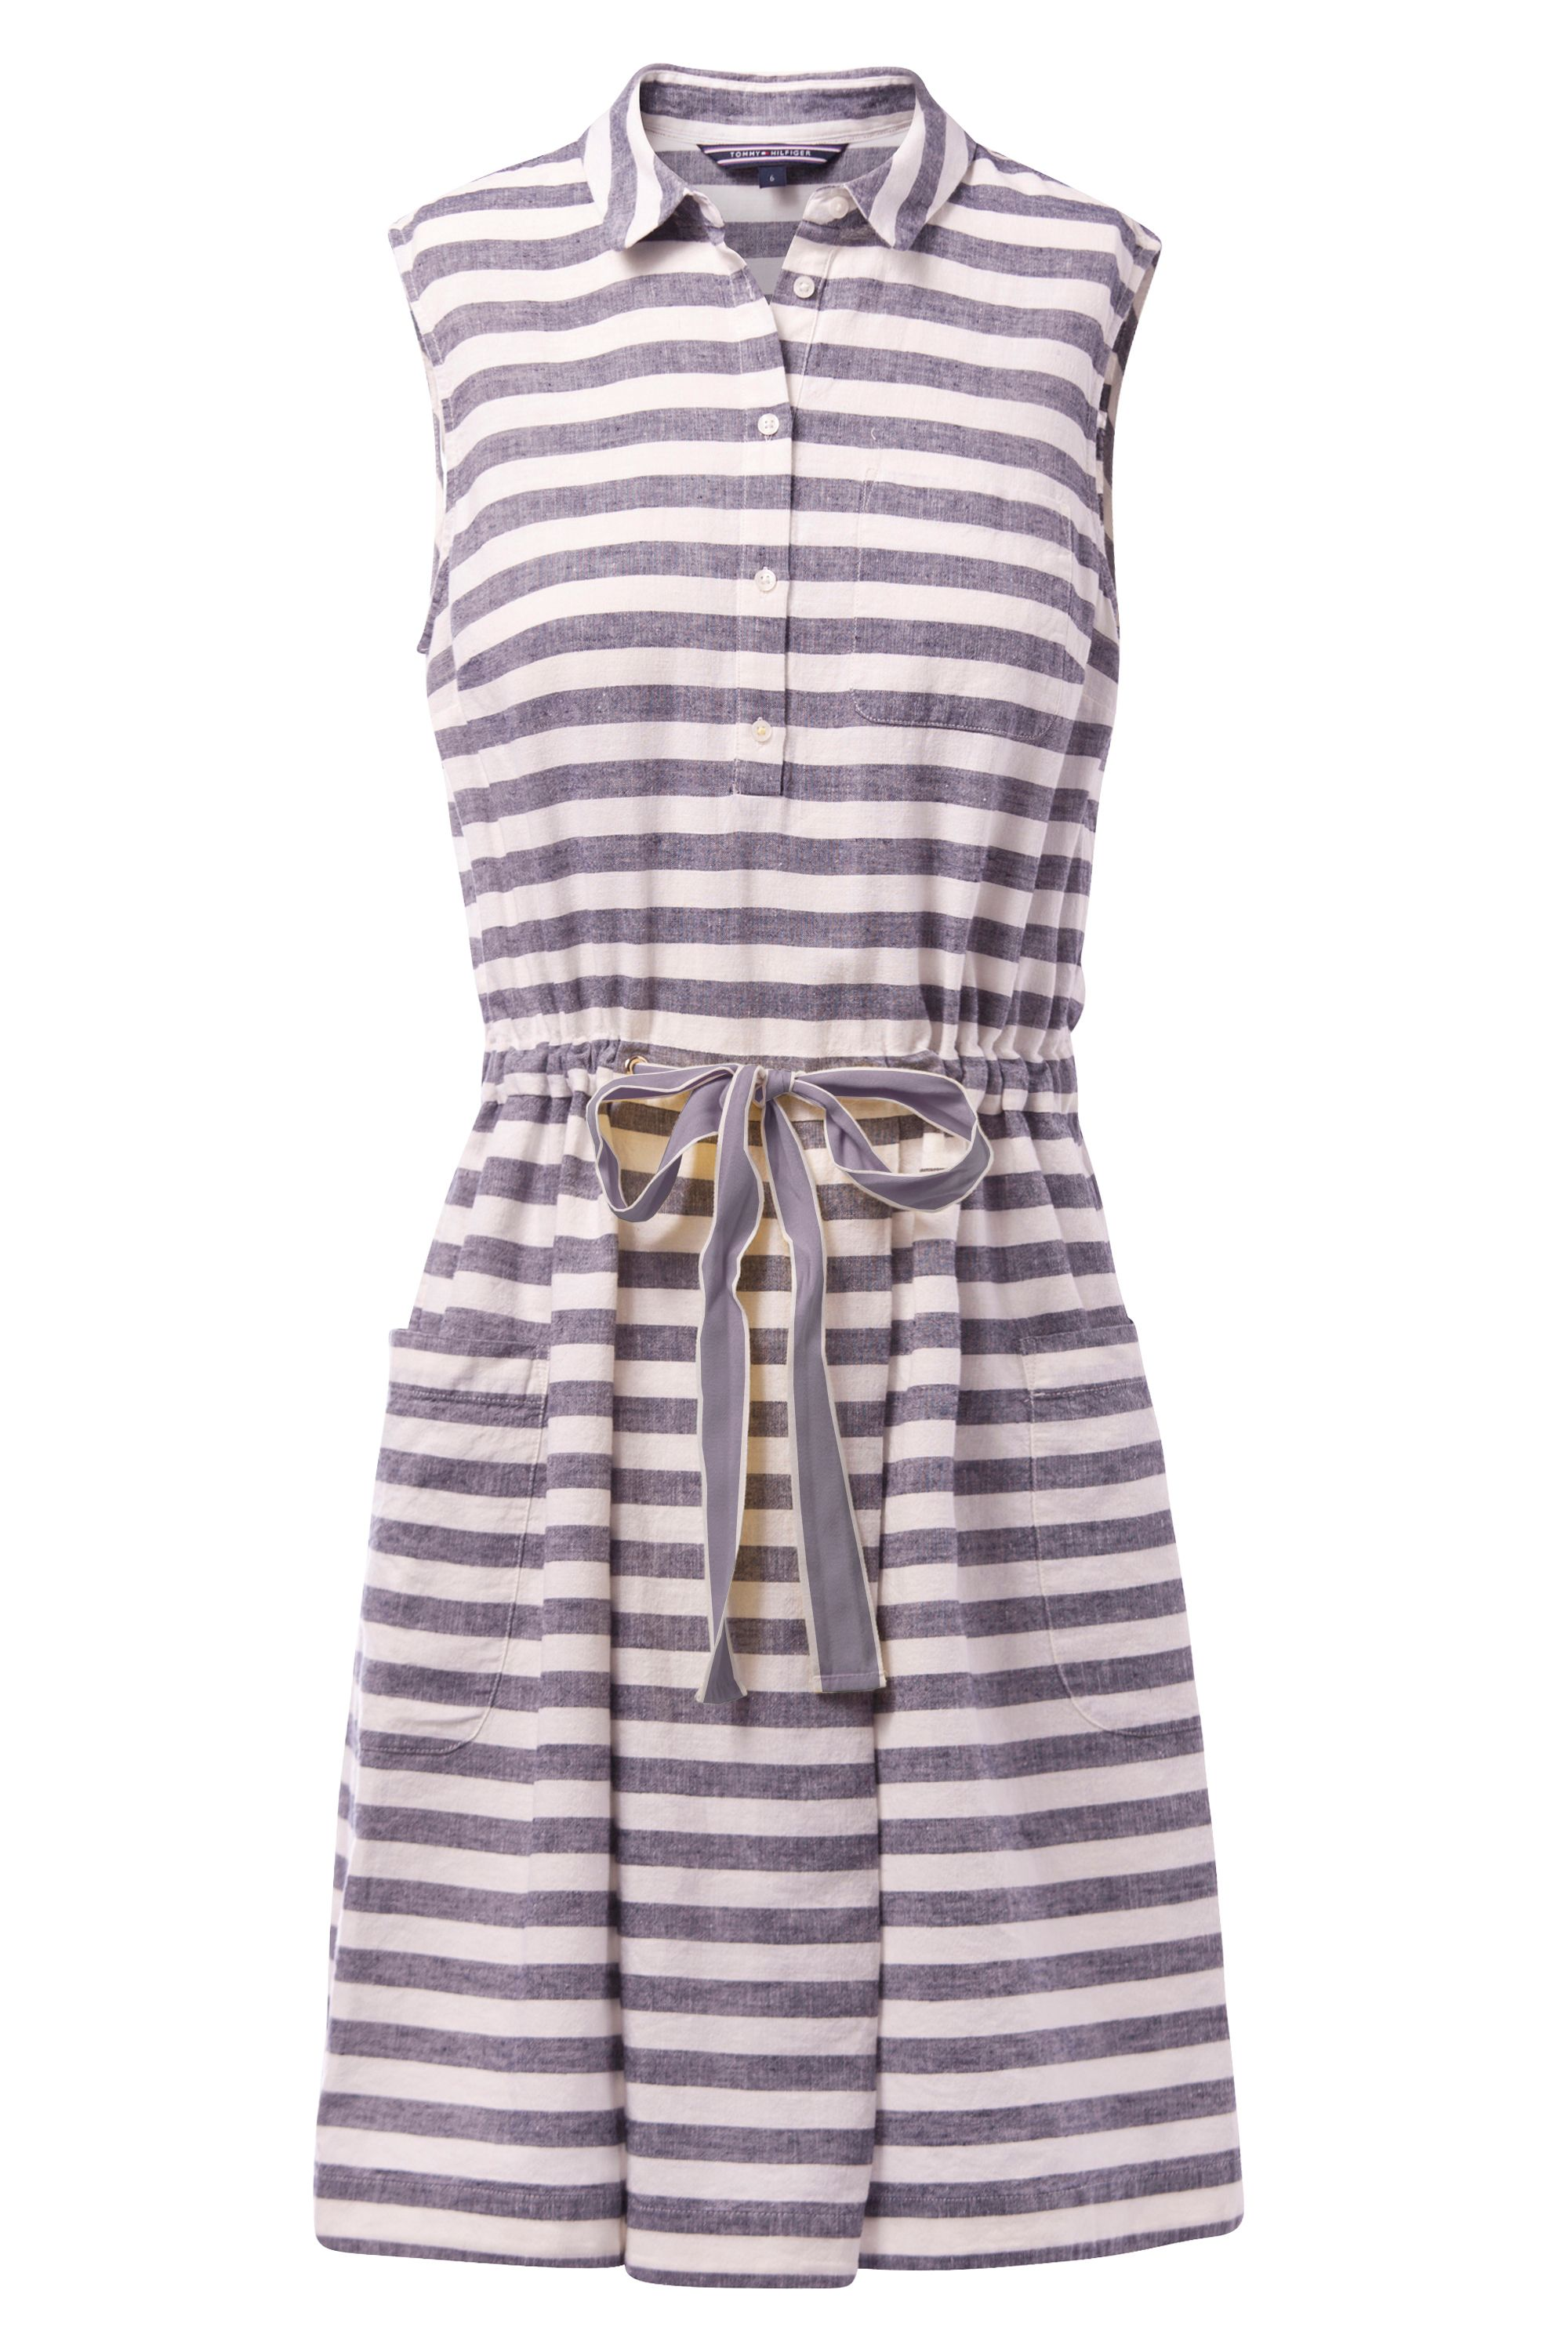 Tommy Hilfiger Astrid Dress, White